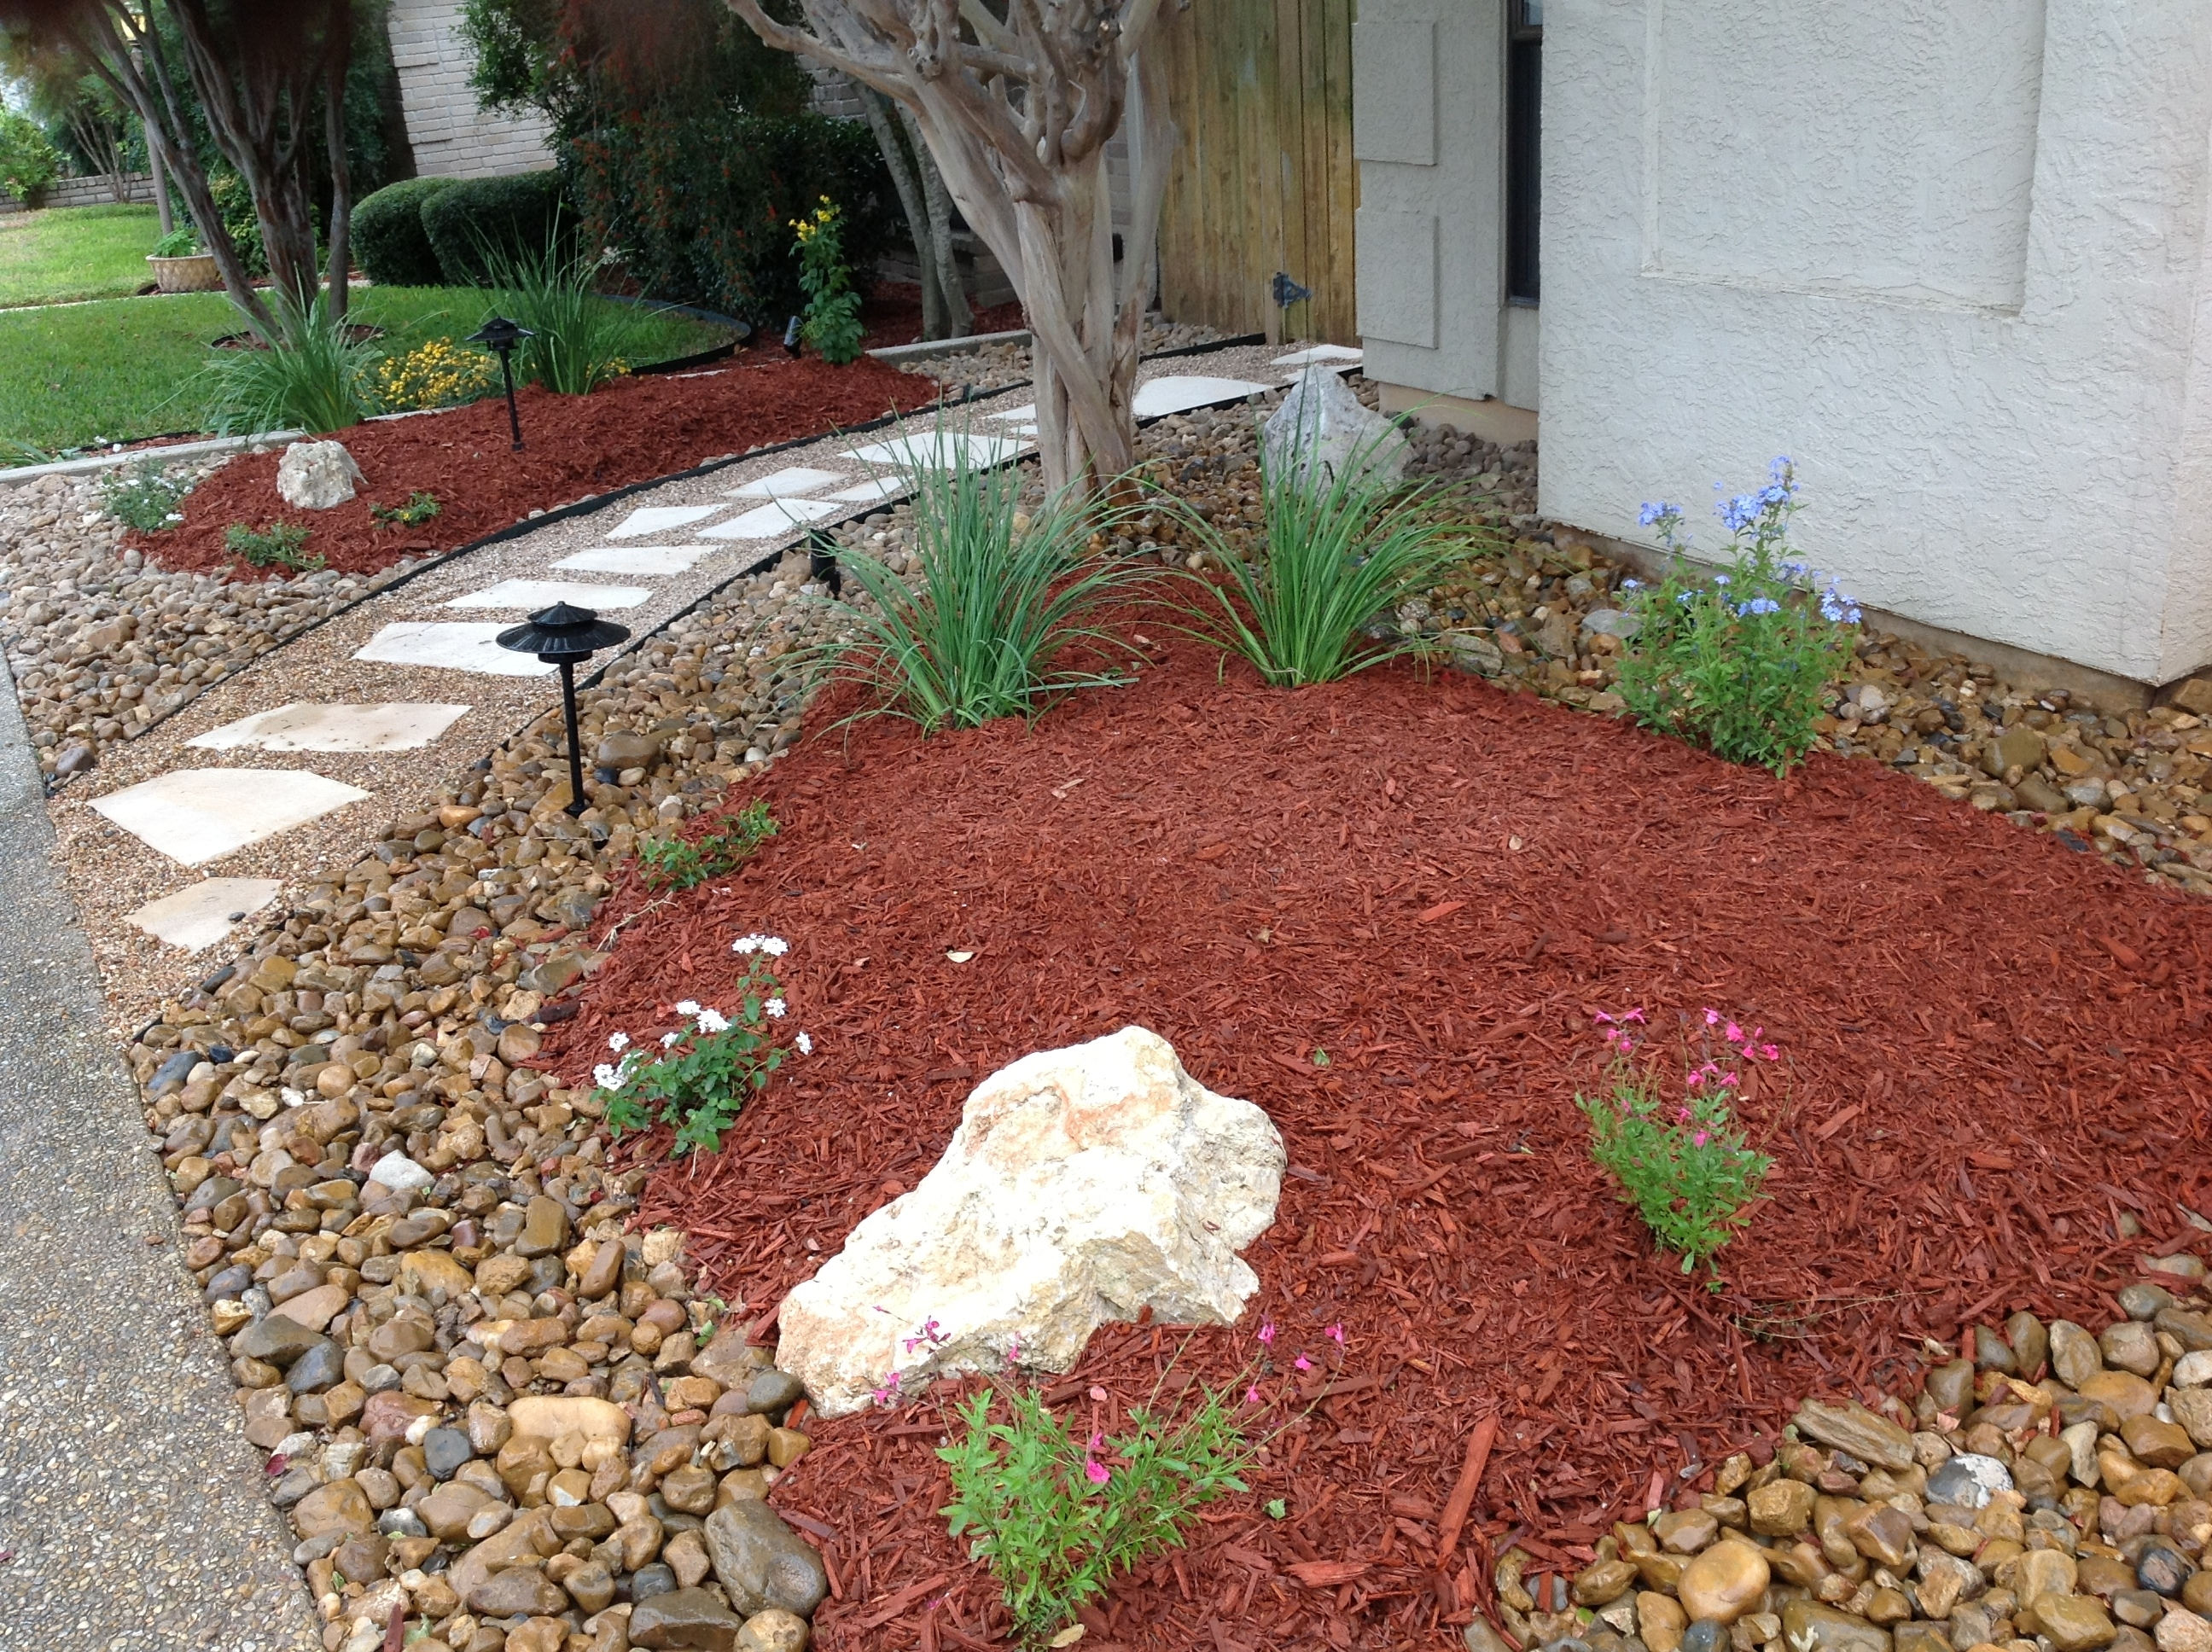 Image of: Rocks Against Paths Bark Mulch In Planting Area Stepping Stones In Landscaping Bark Landscaping Bark For Season